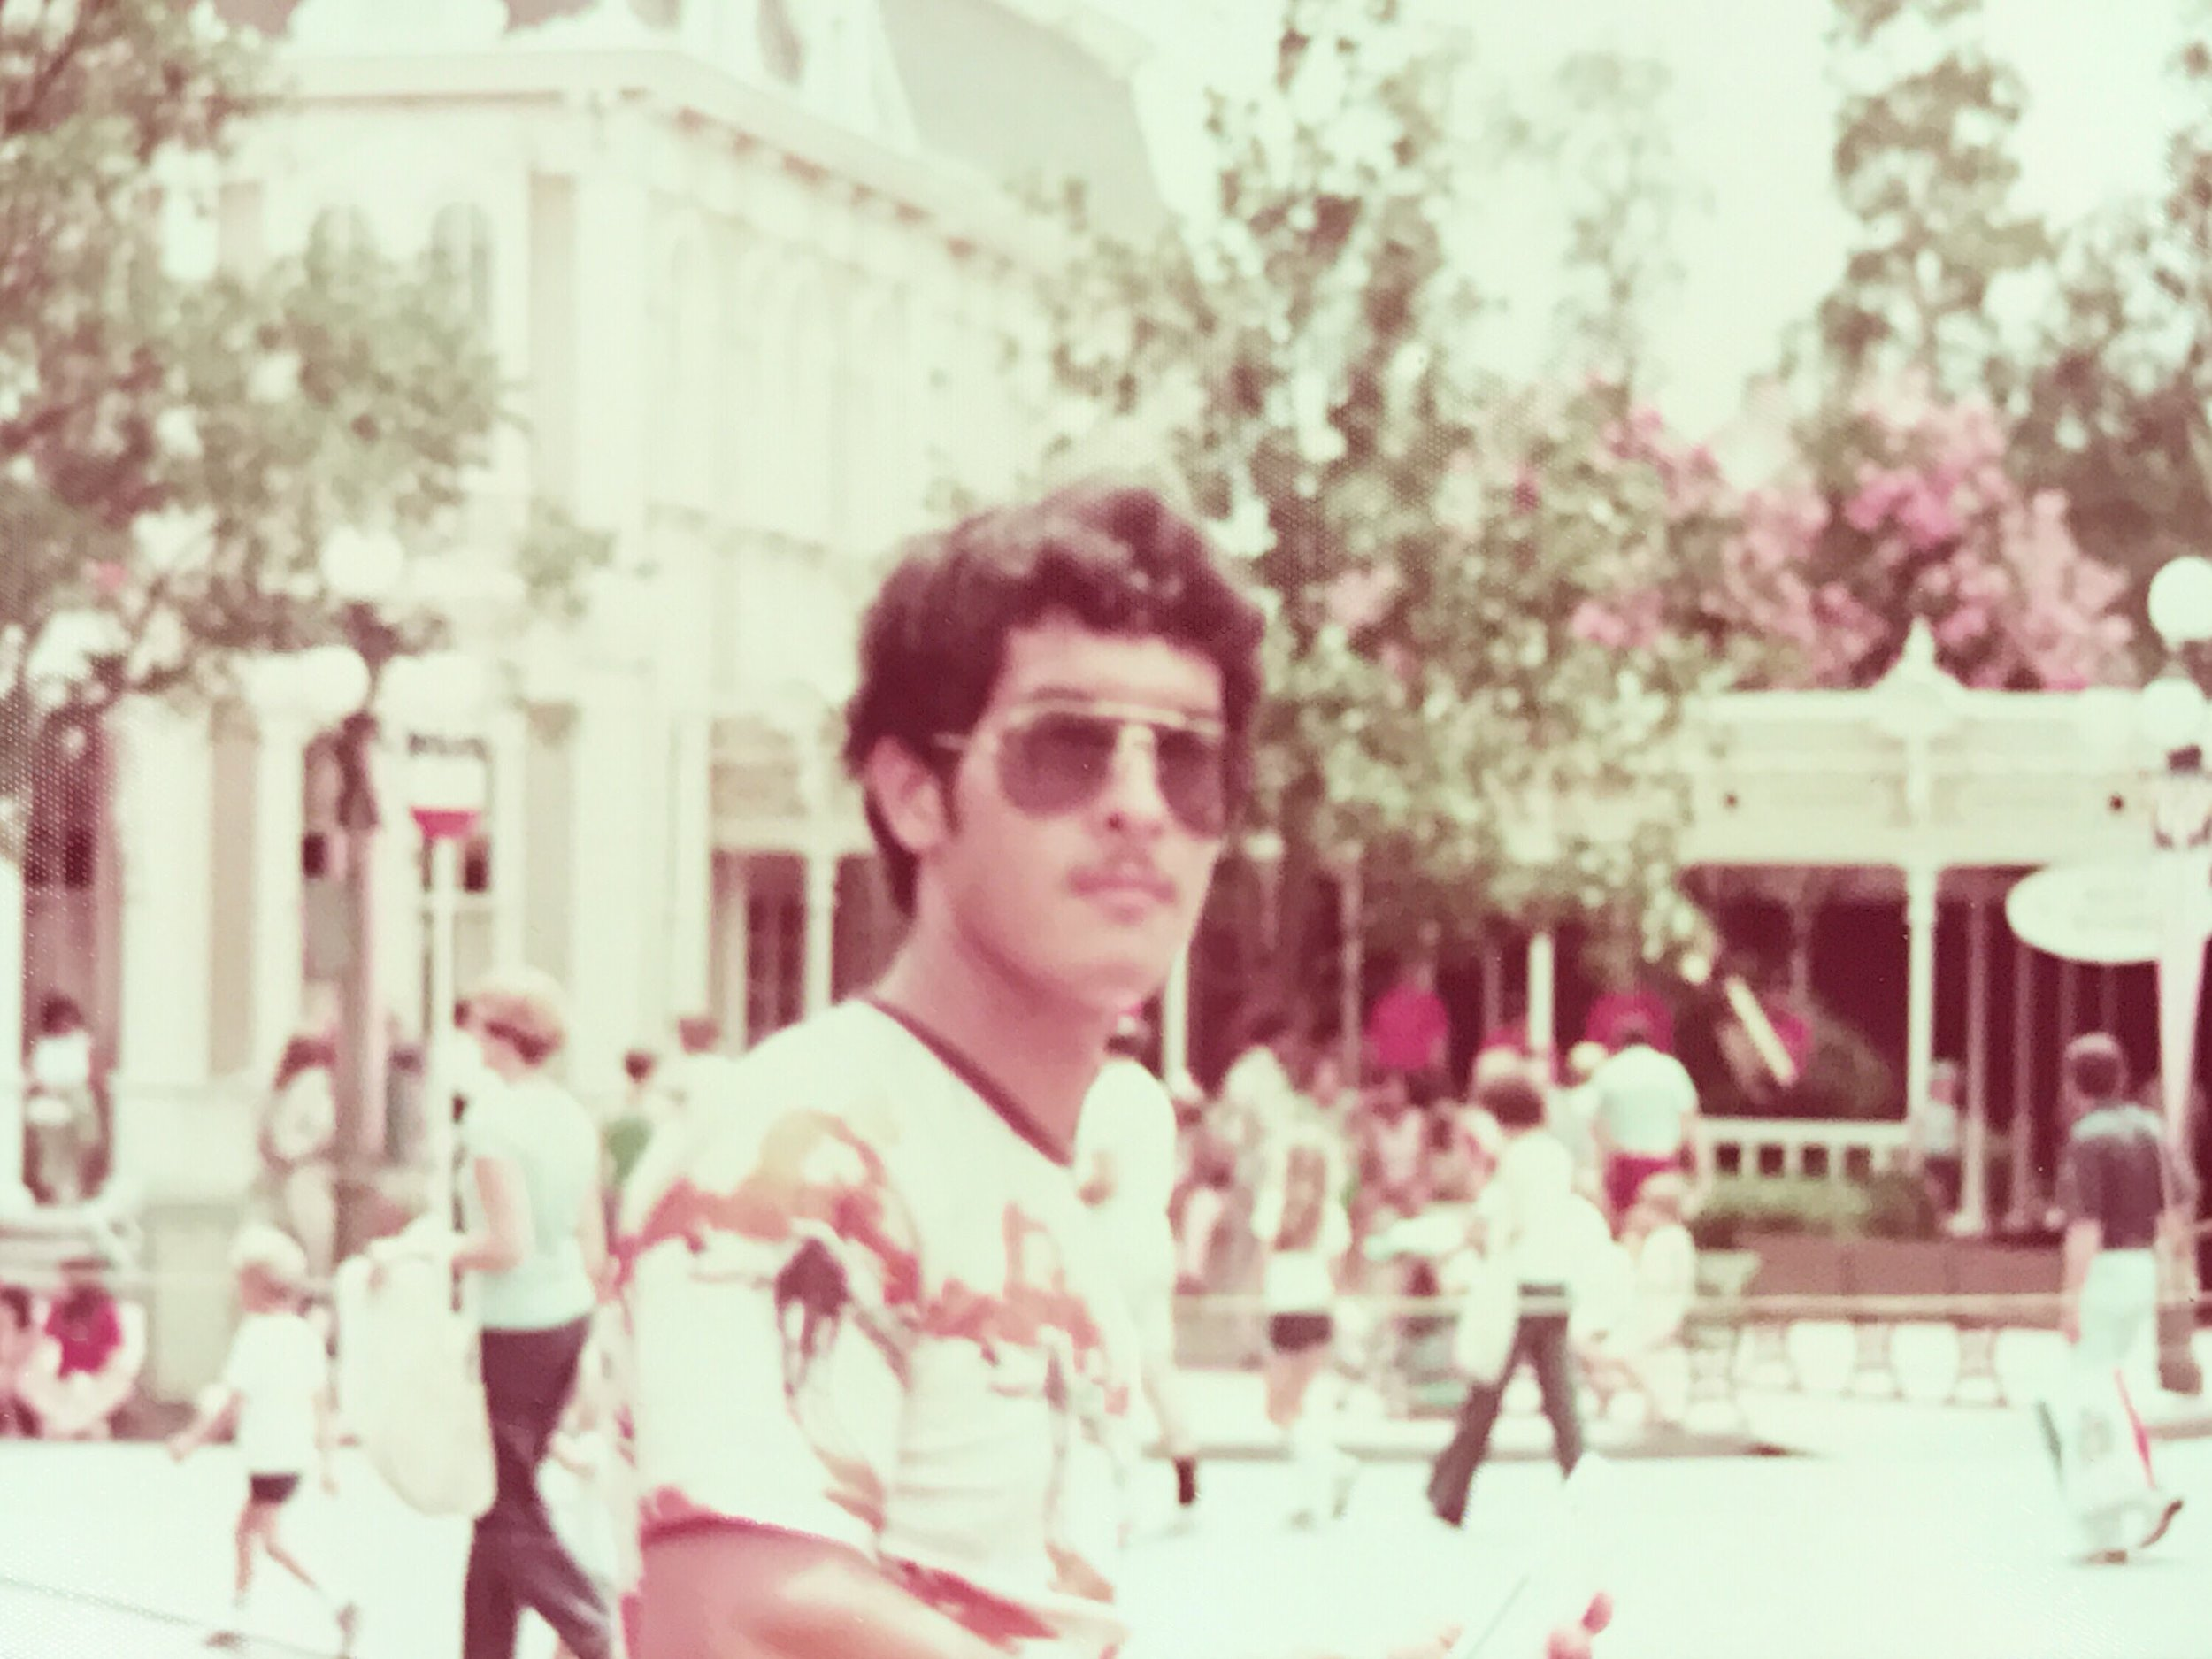 - My dad in his early twenties at the Magic Kingdom